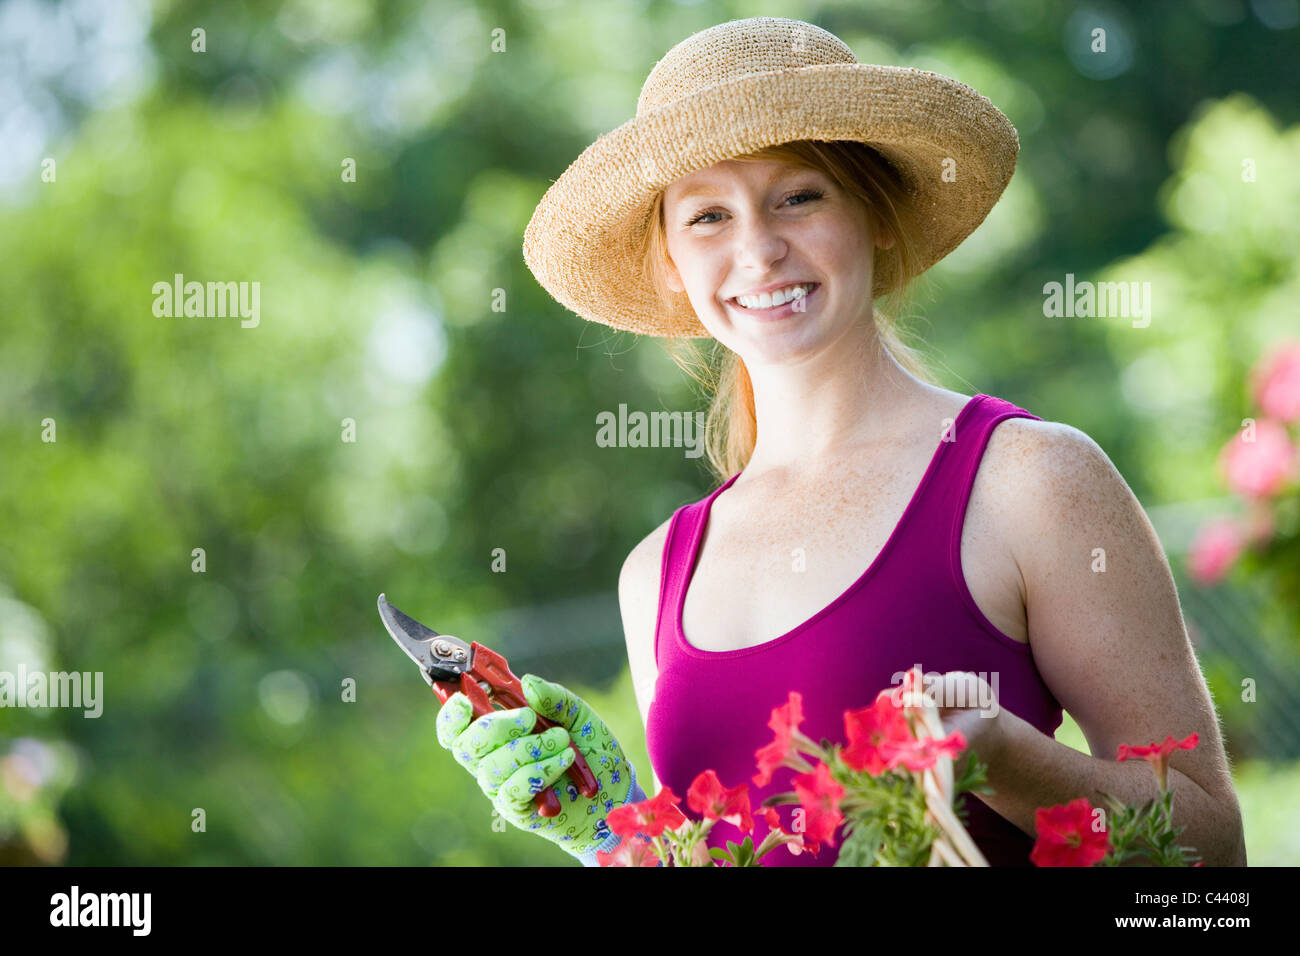 Smiling young woman cutting flowers in her garden - Stock Image